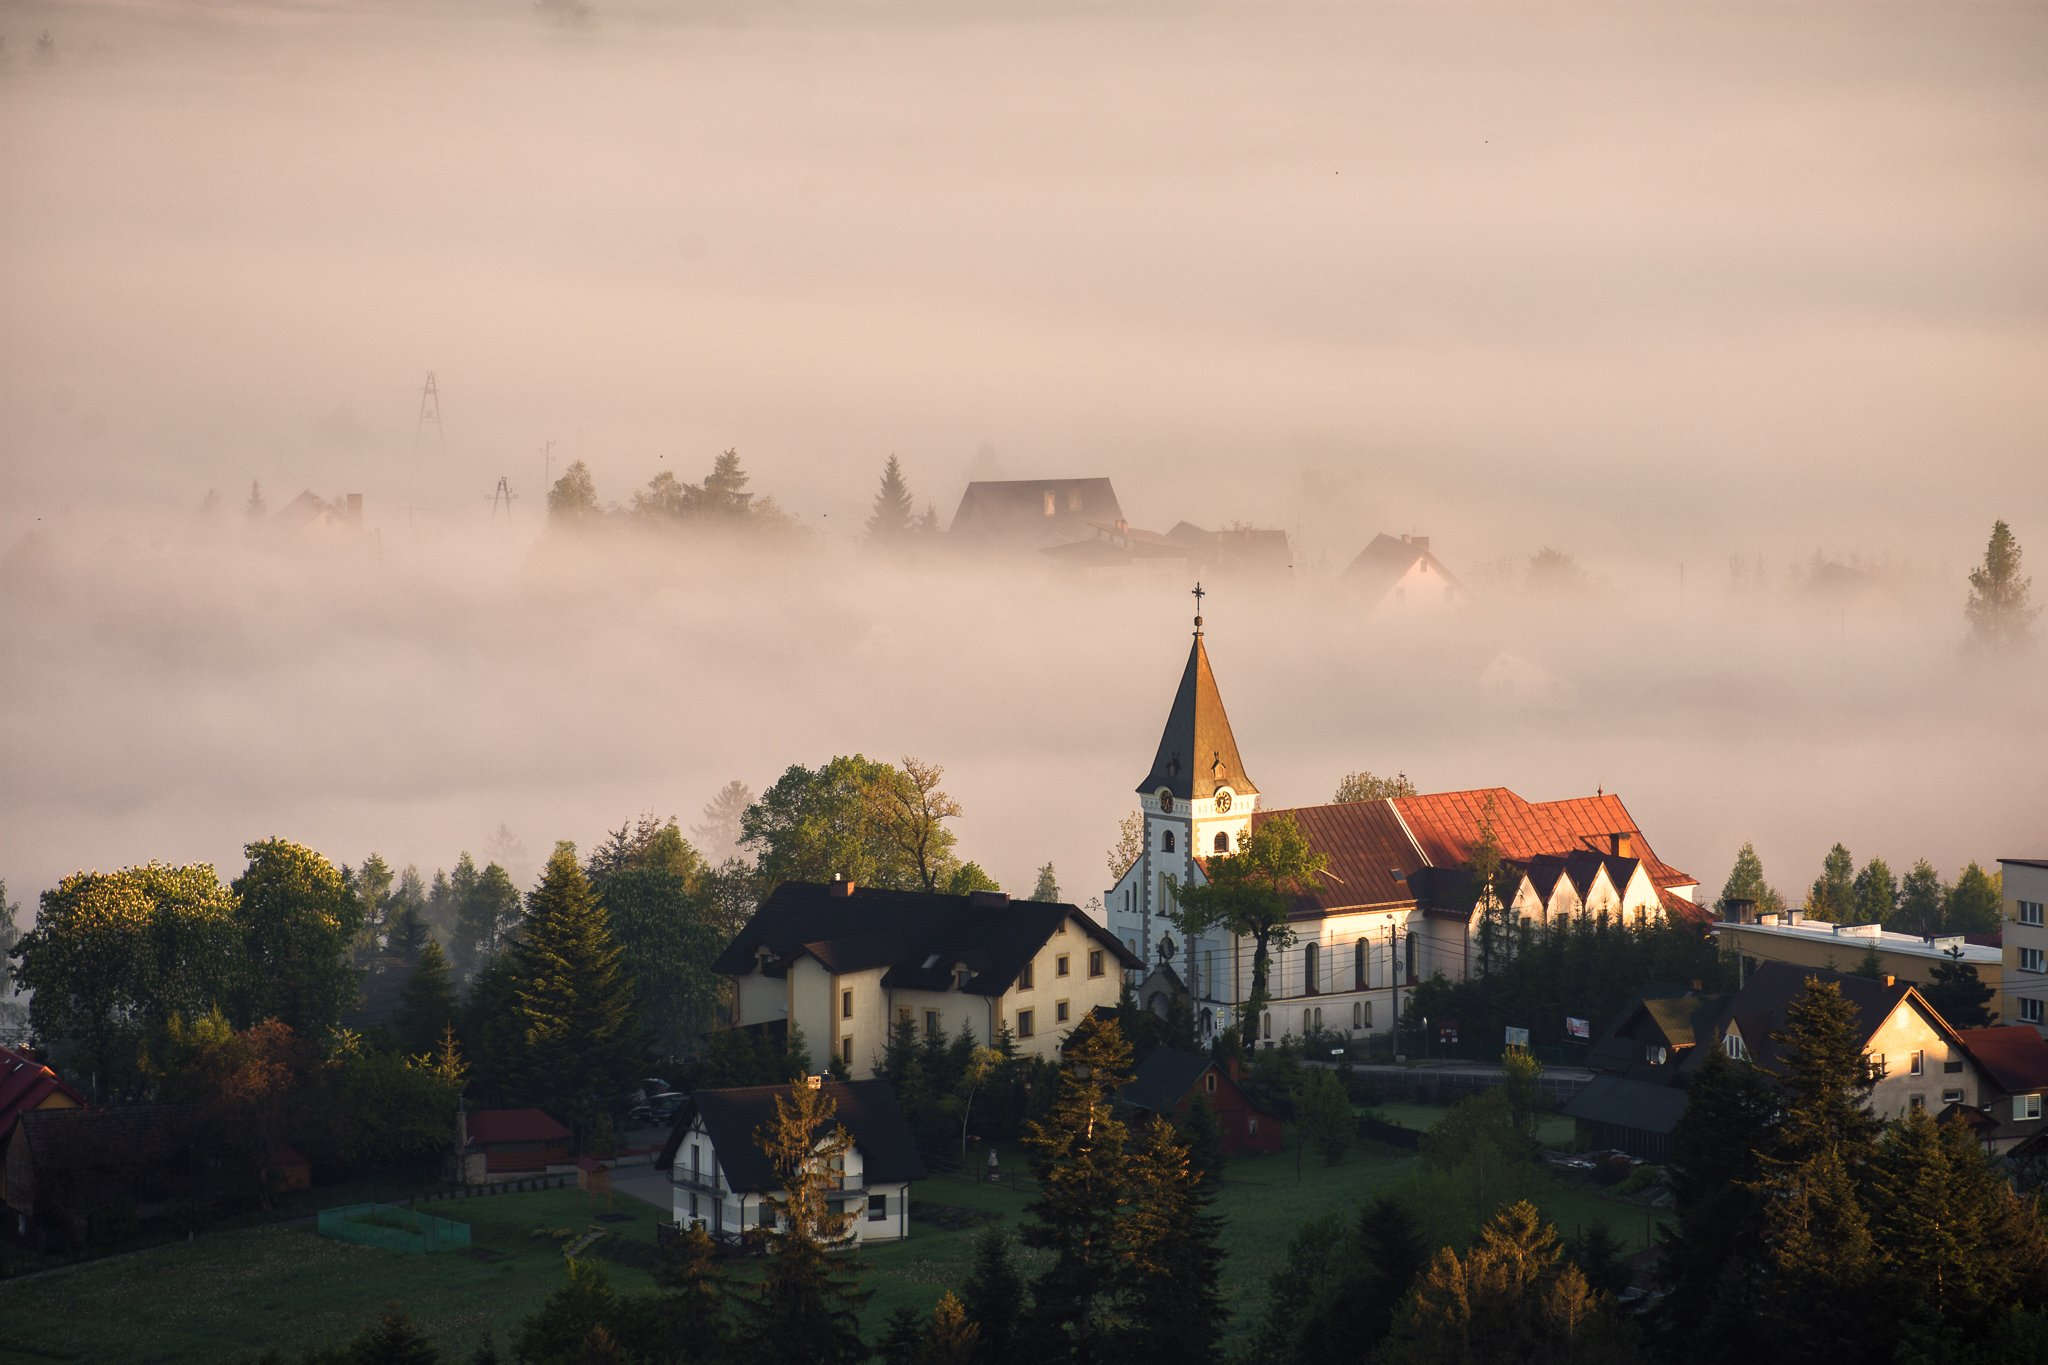 morning,mist,foggy, Marcin Mucharski